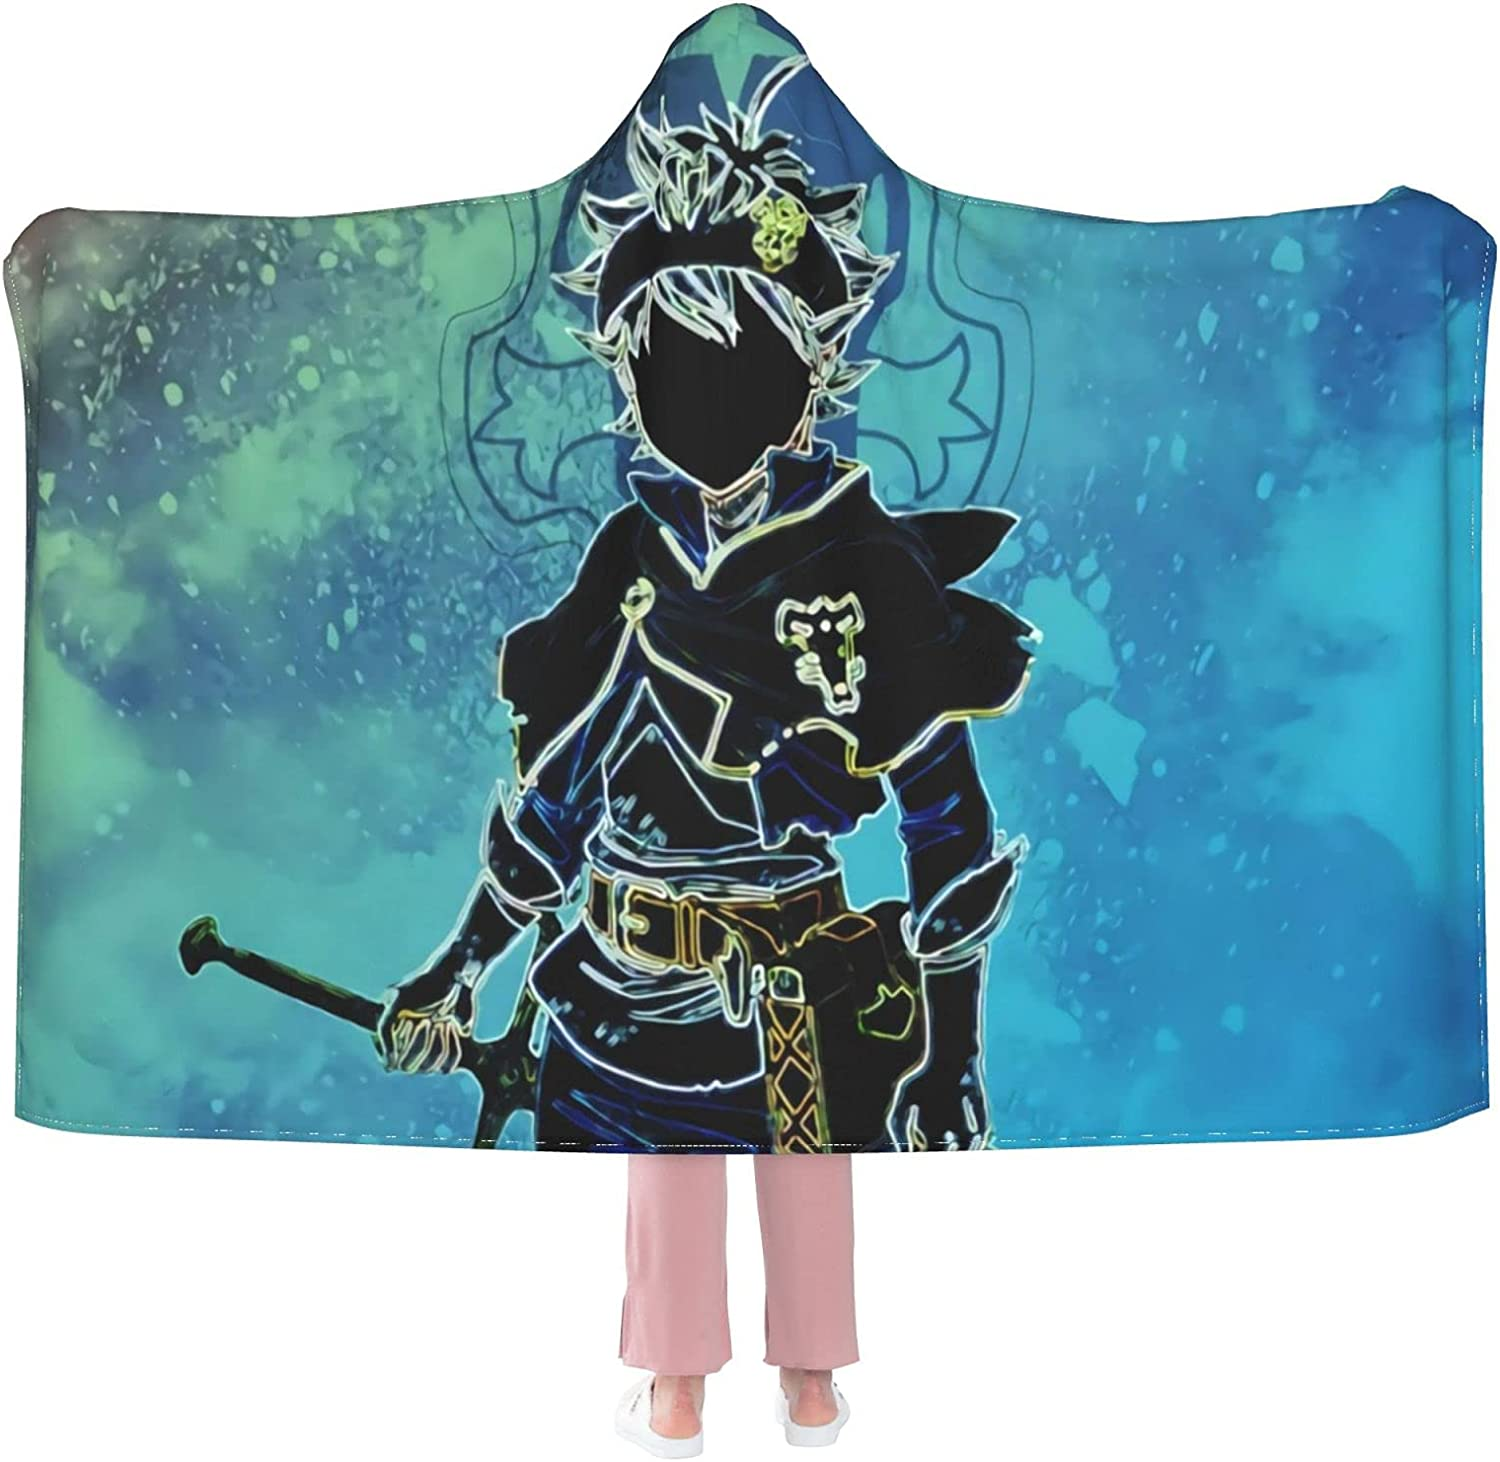 Black Clover Asta Hooded Blanket Wearable Max 85% OFF Tulsa Mall Anti-Pilling Flannel